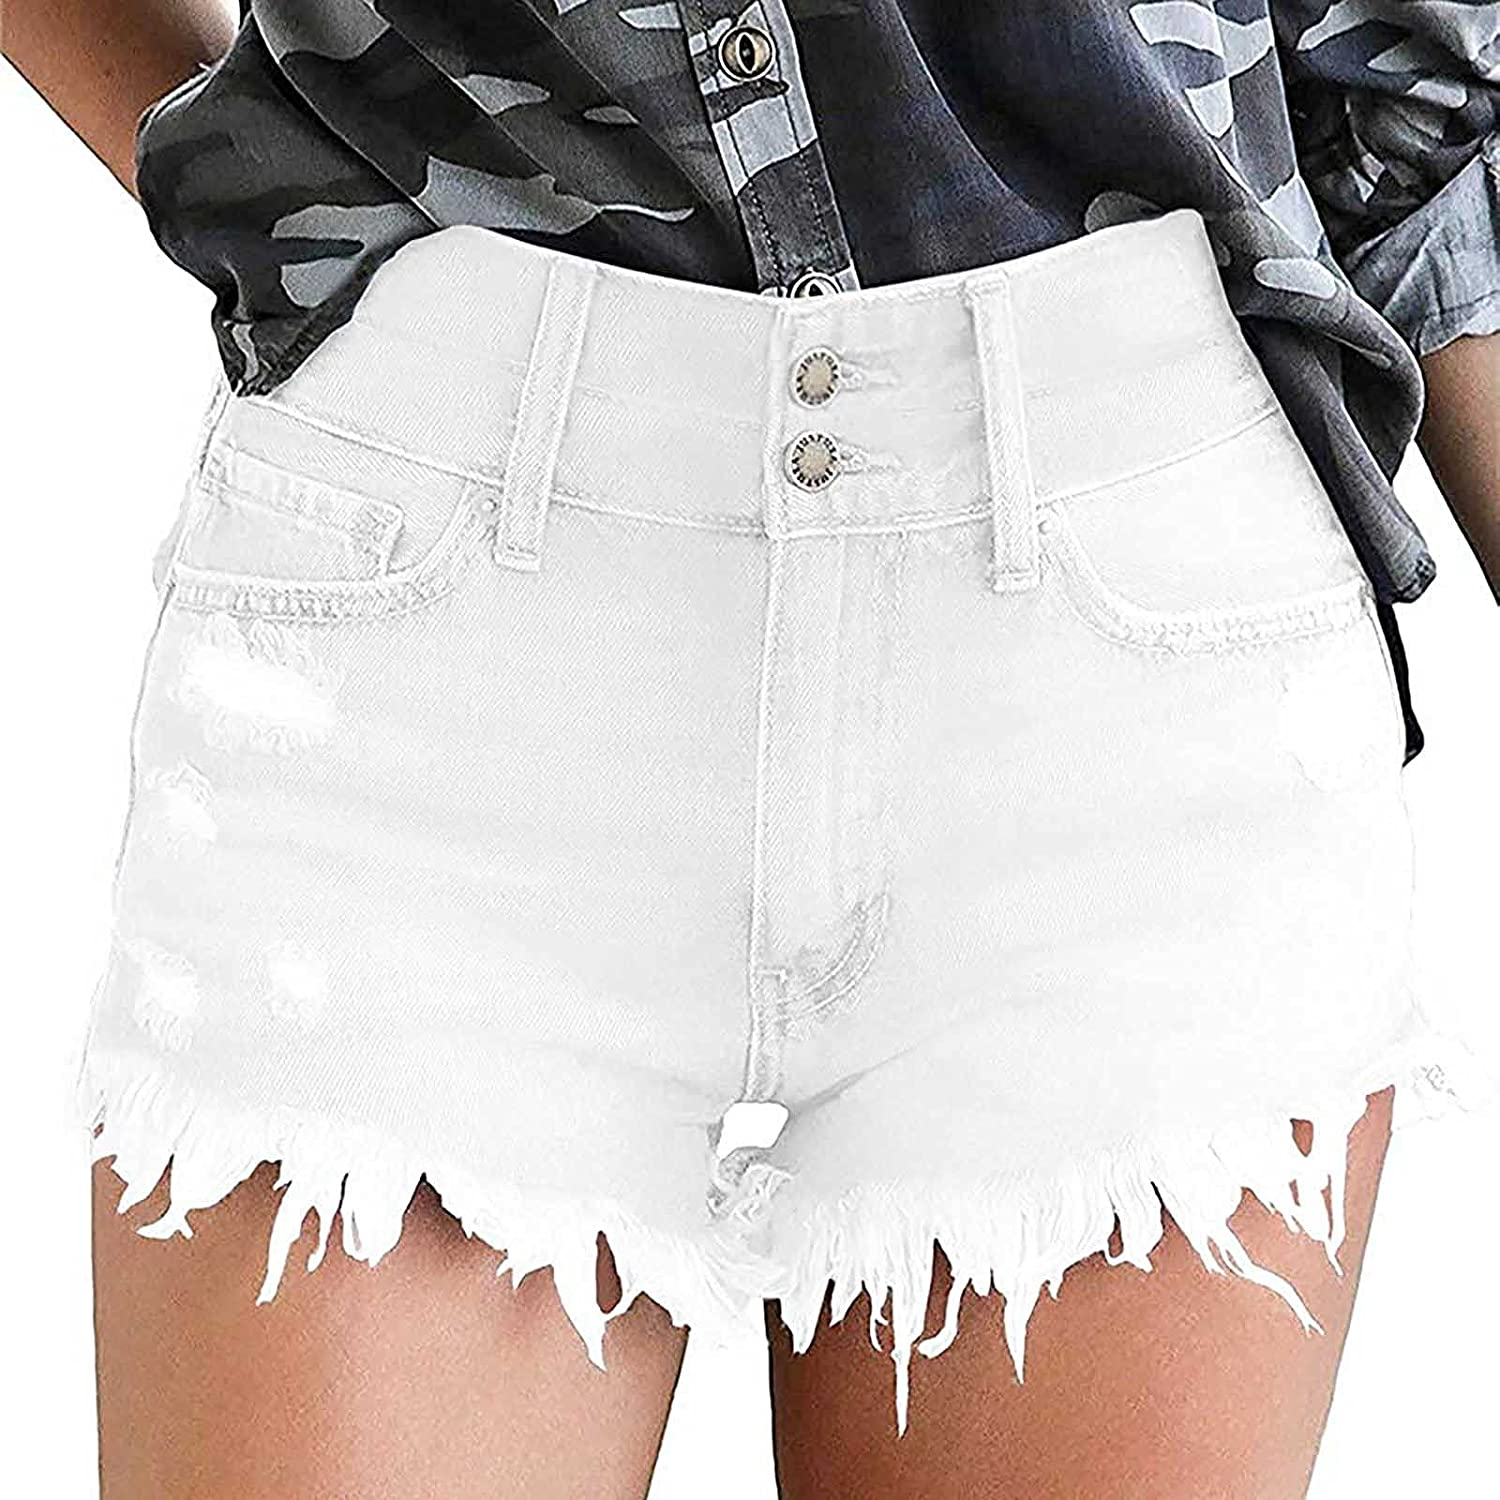 VonVonCo Ripped Jeans Shorts for Women Casual Denim Shorts Pants Frayed Jean Cut Off Short Hot Jeans